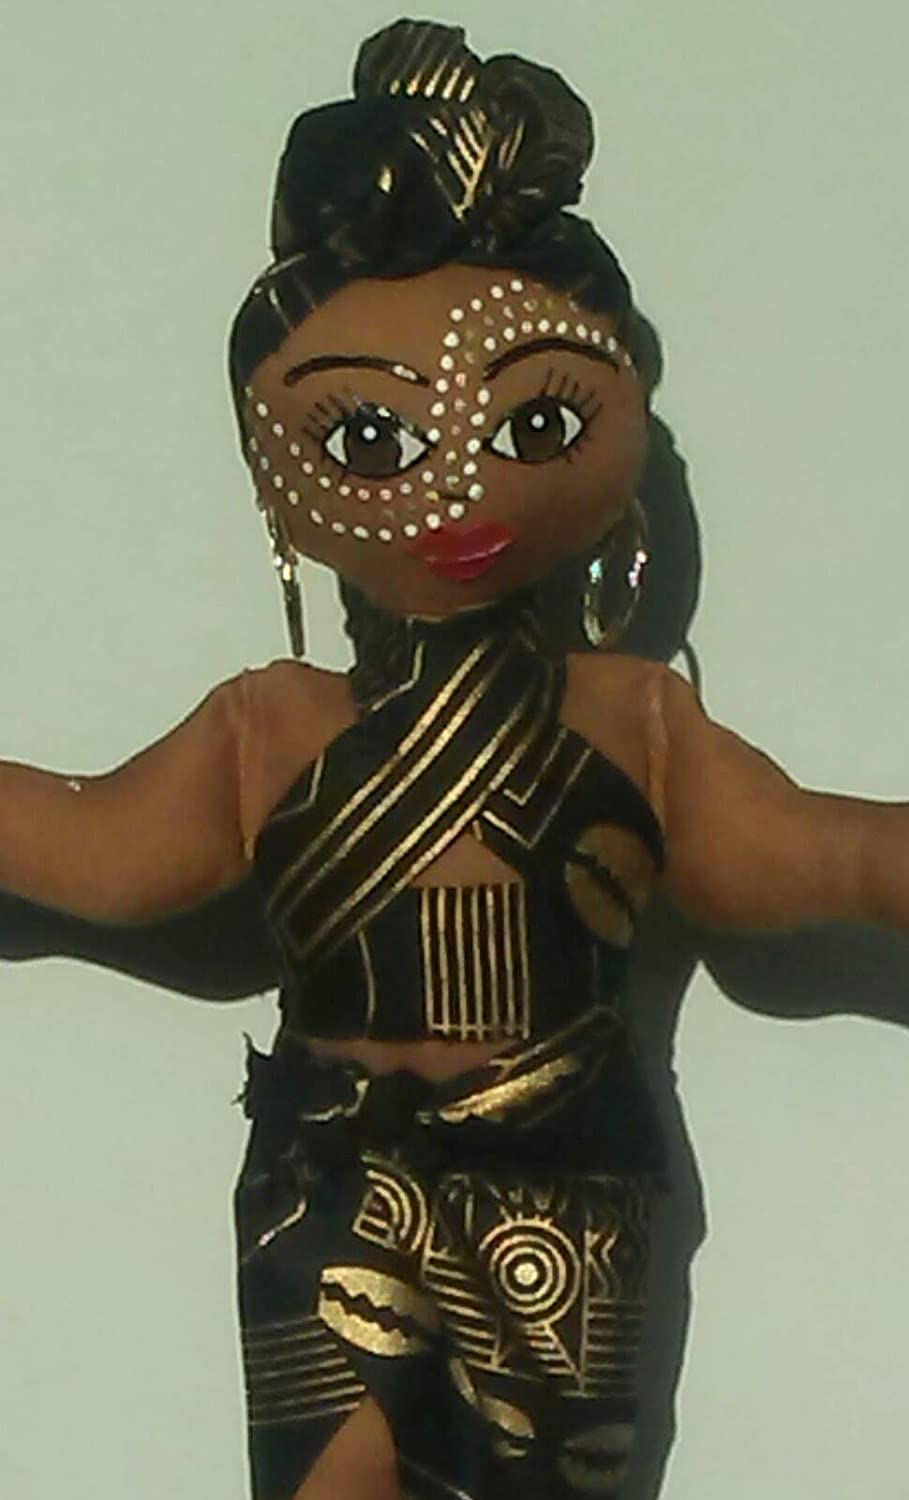 Black Doll Maker Ethnic Doll Collectible Doll Natural Hair Styles Head Wrap Multicultural Doll 11 inch Doll Black Doll African American Doll African Inspired Handcrafted Hand Painted